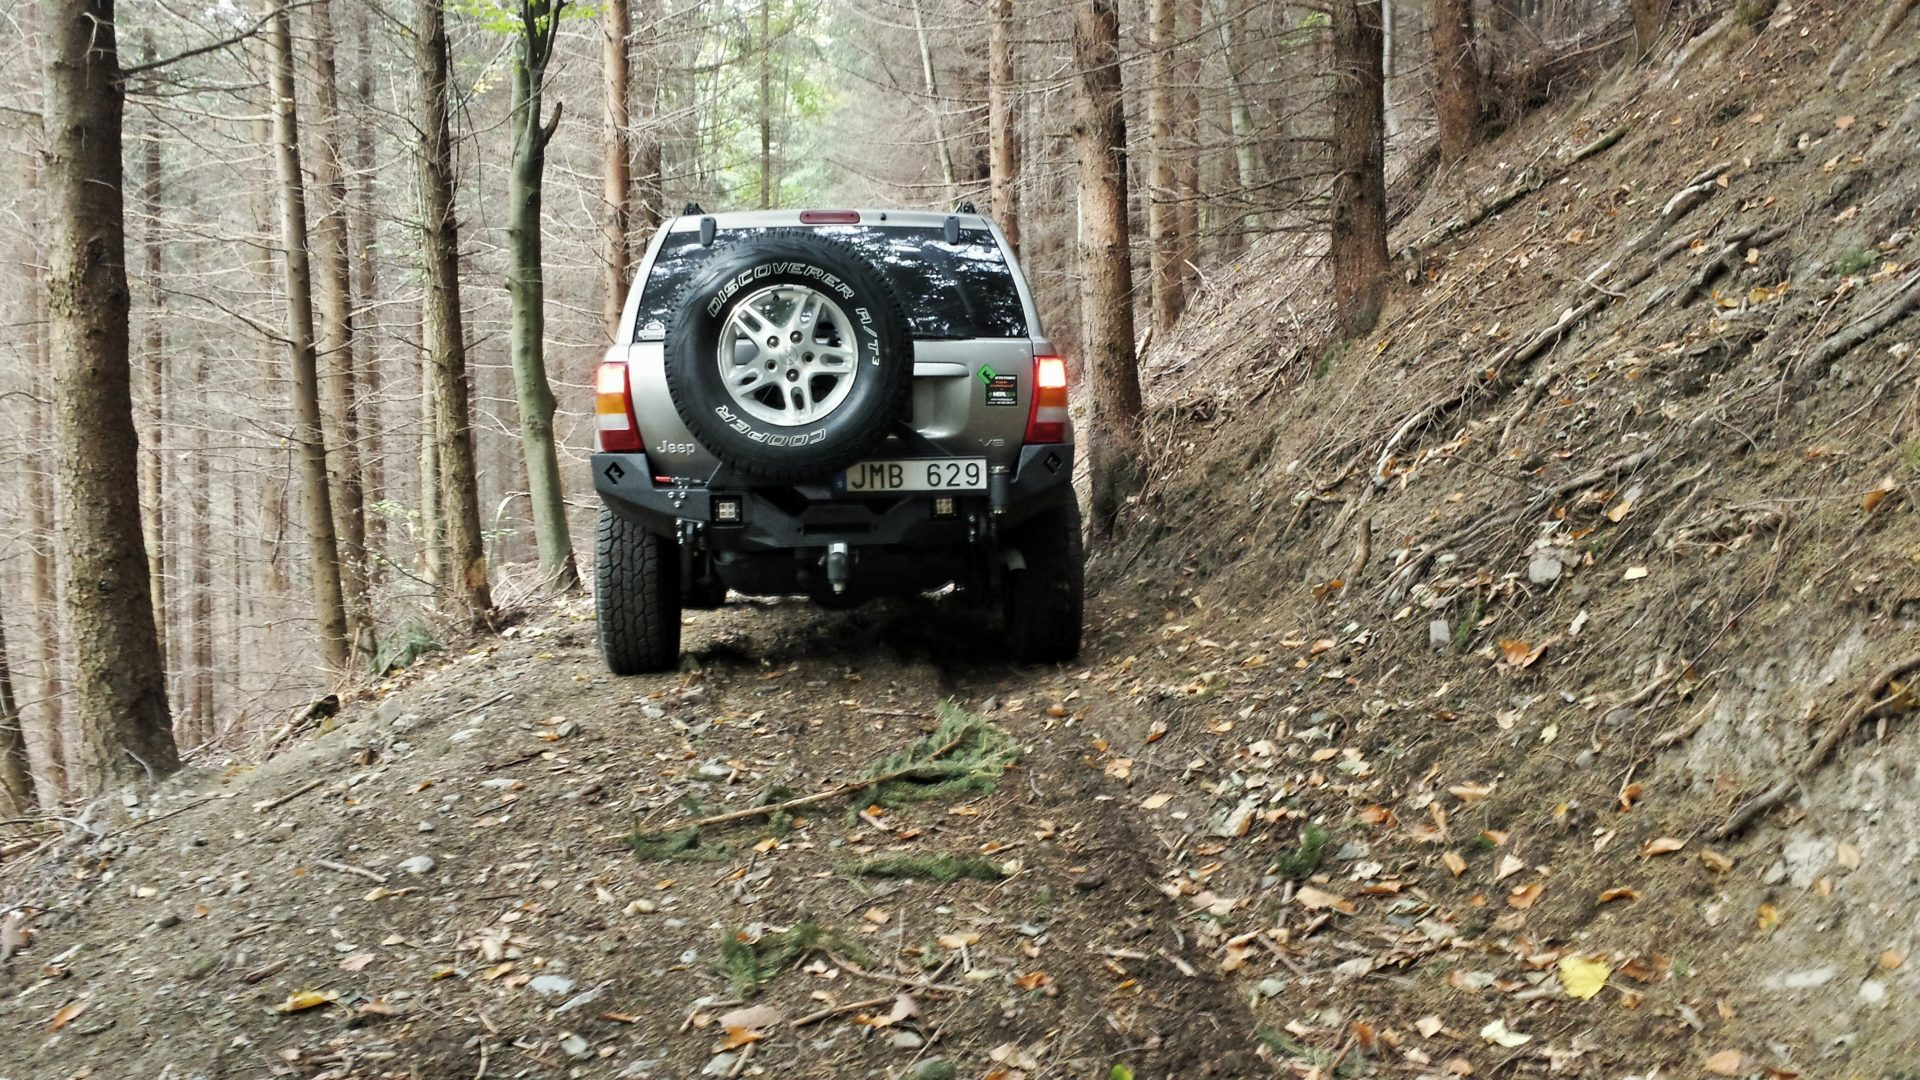 Jeep WJ with Metalpasja rear bumper in the forest